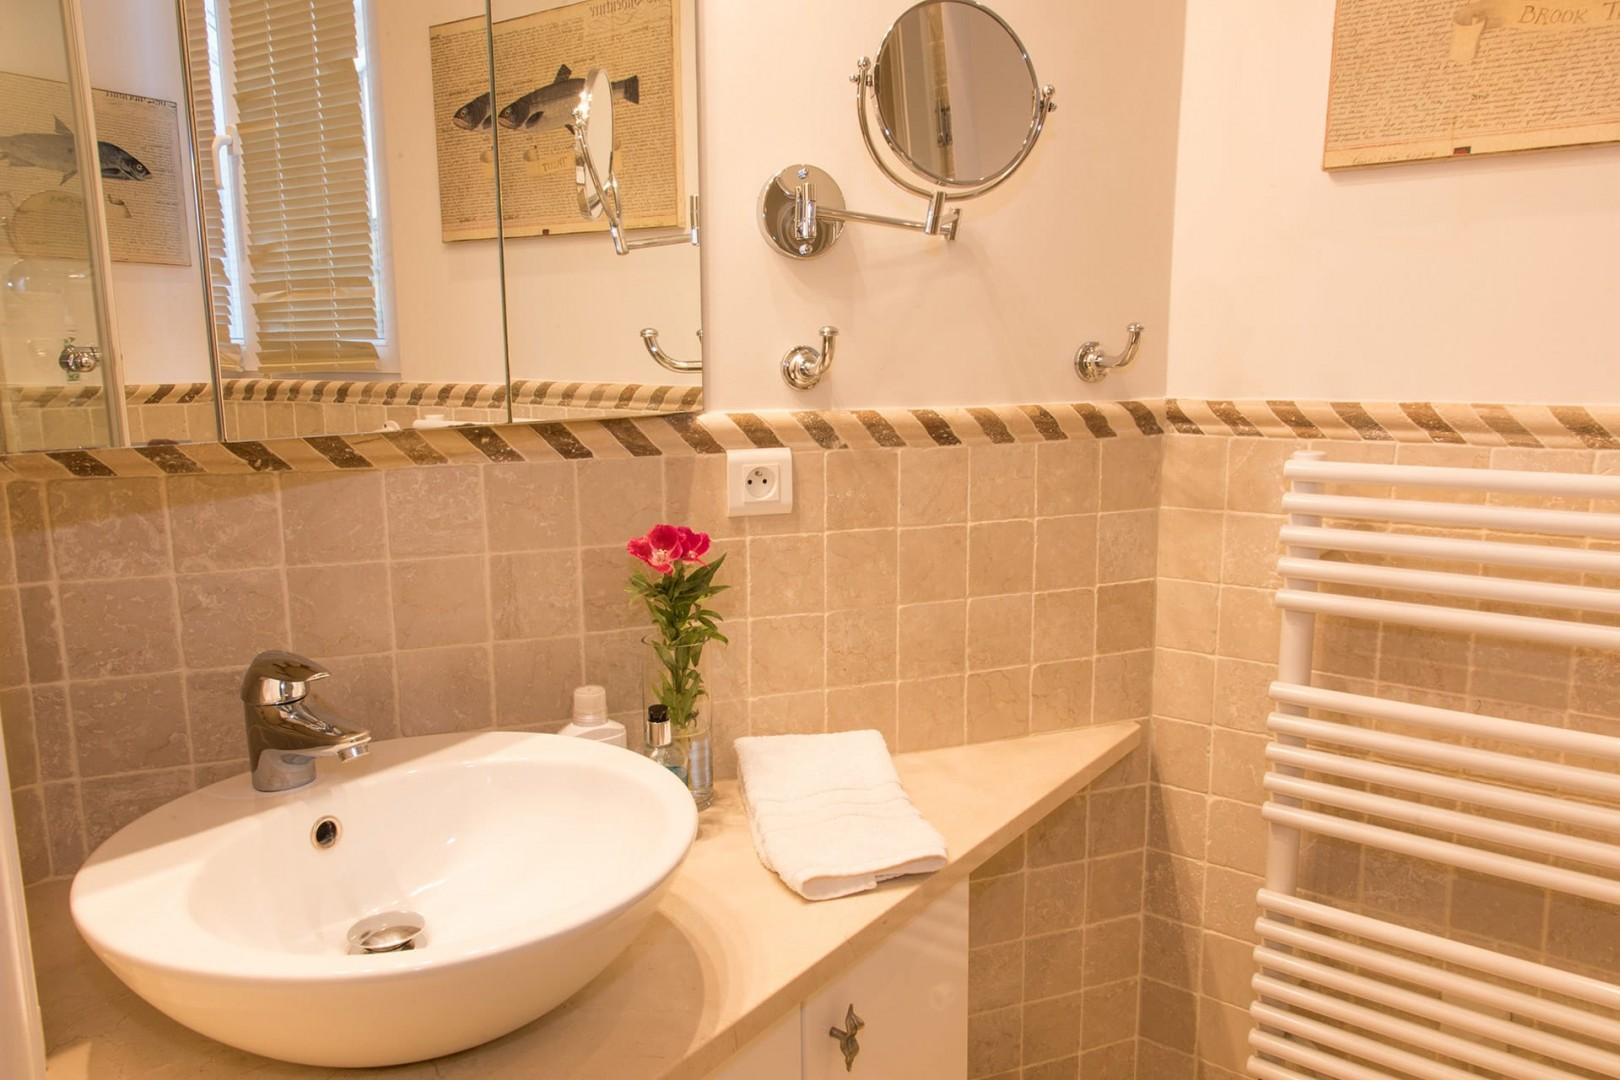 Bathroom 2 also features heated towel racks for your comfort.